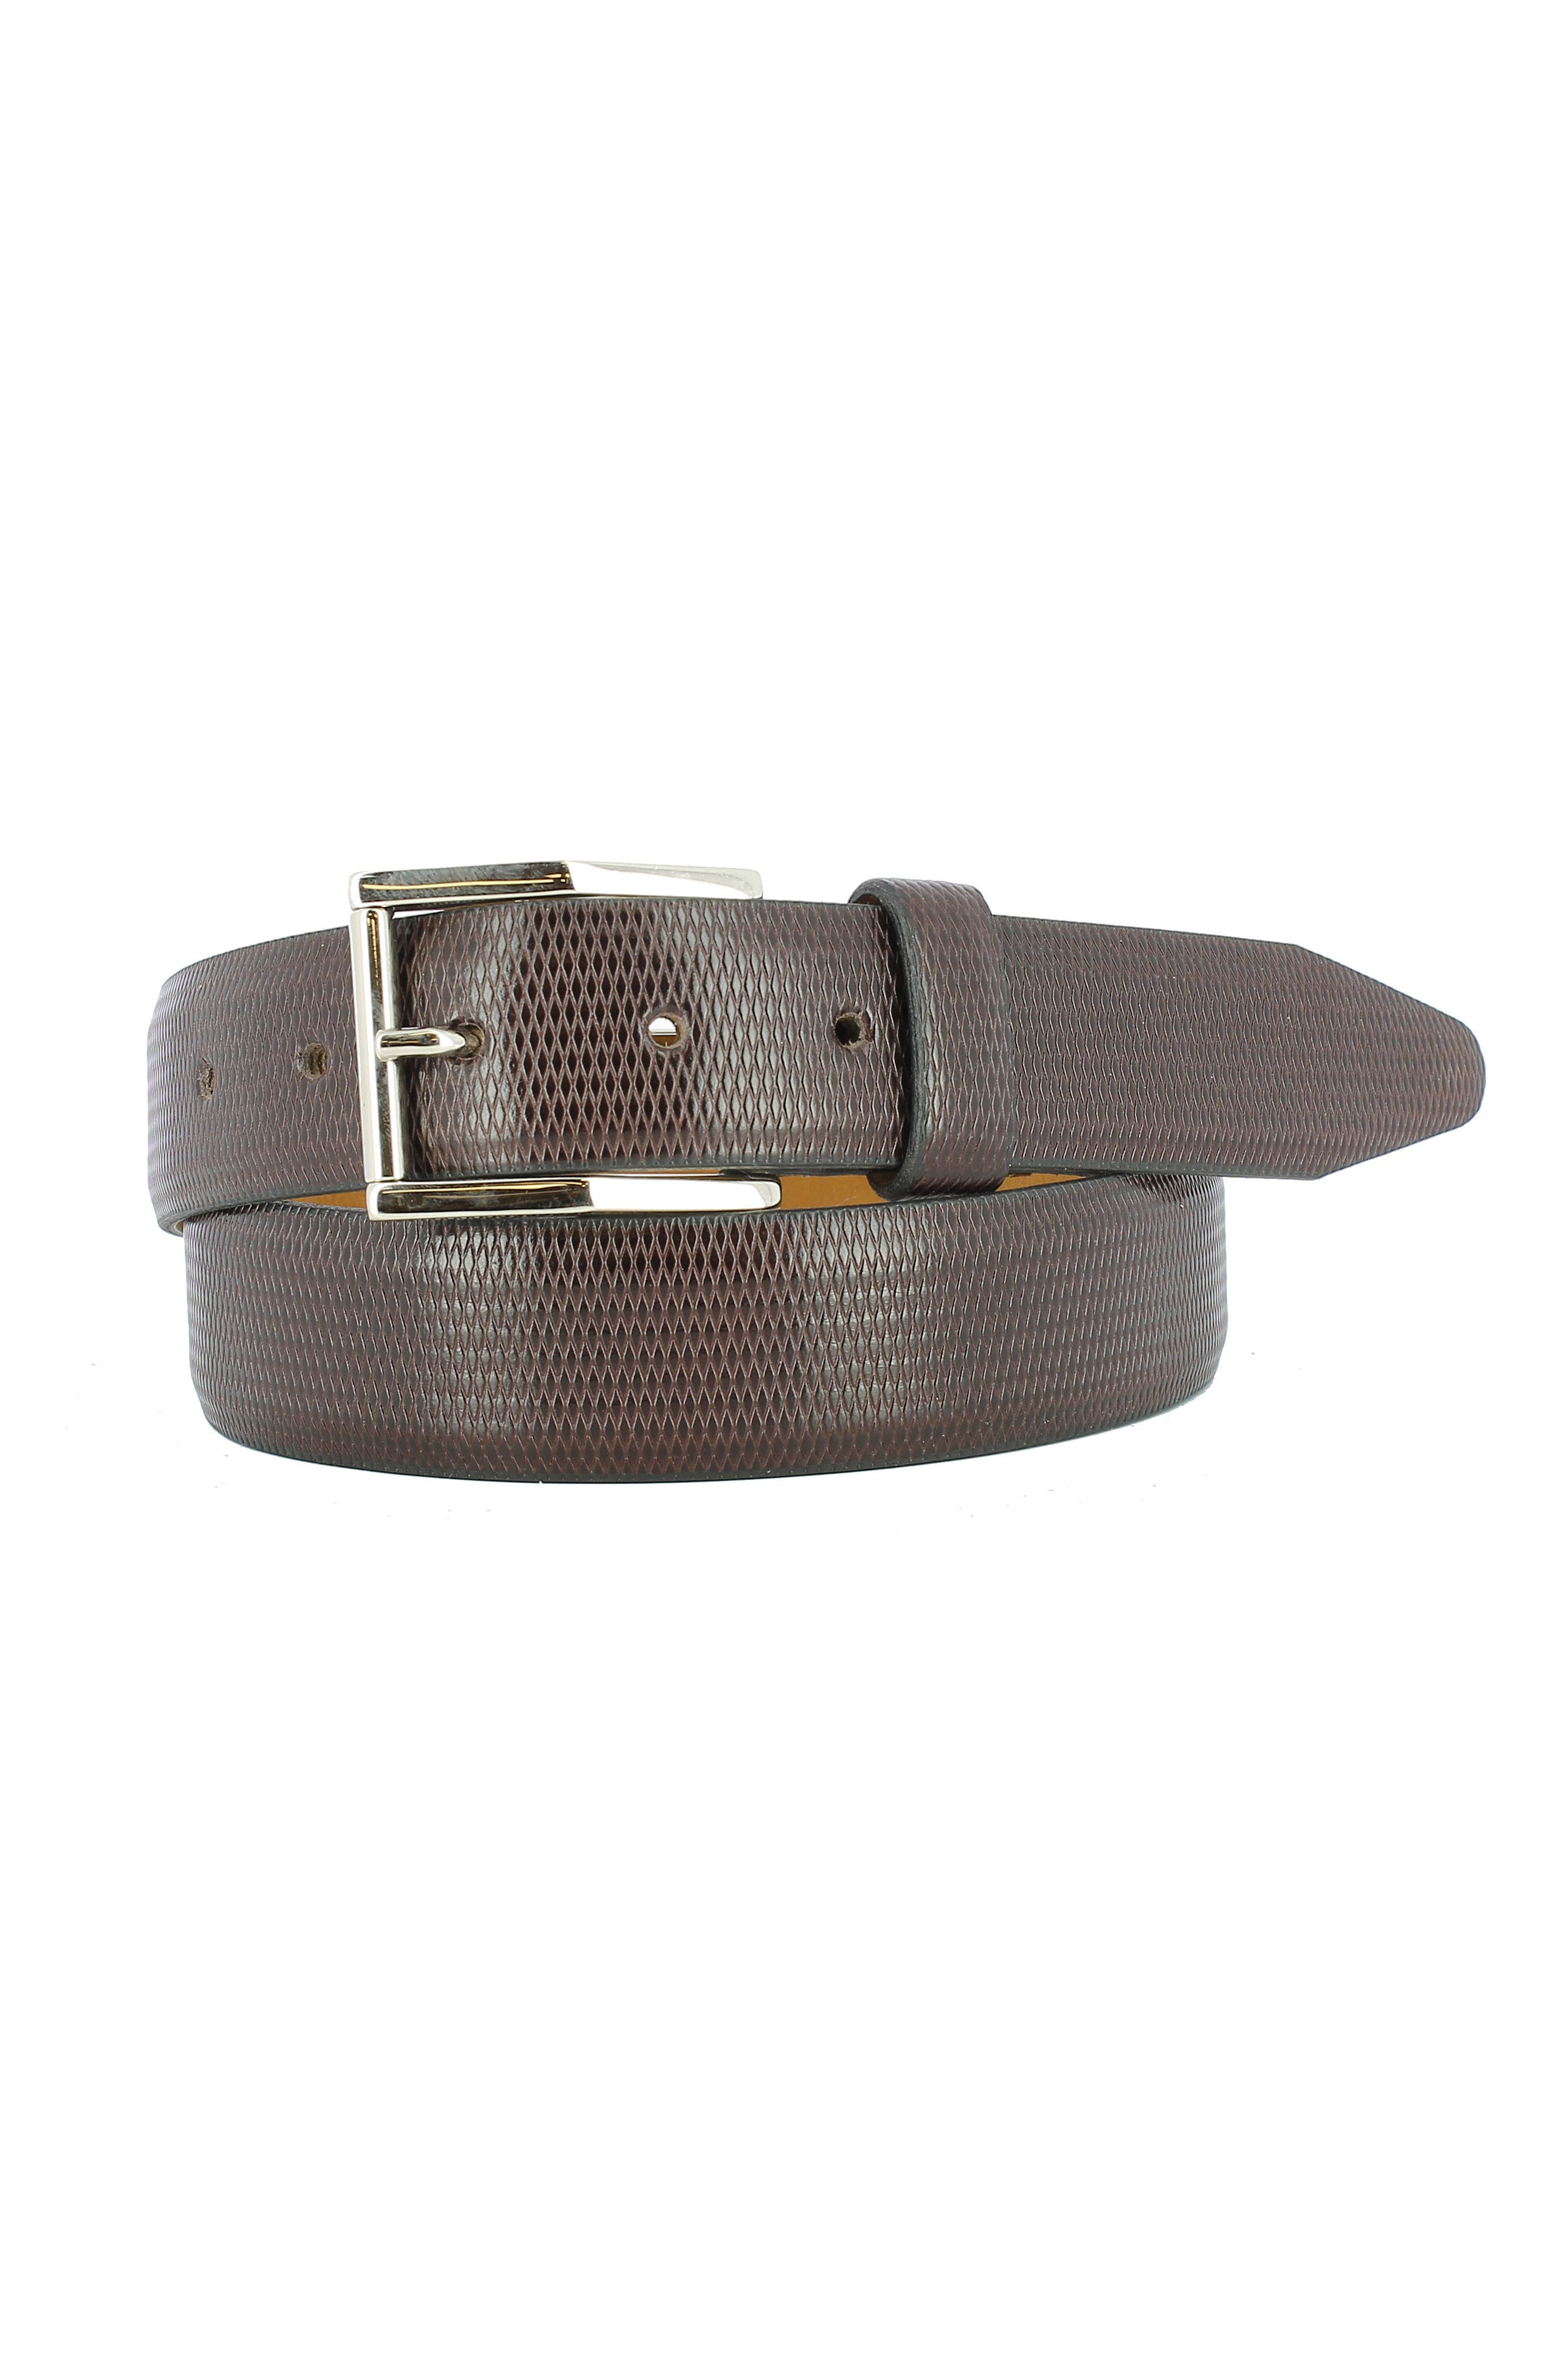 Remo Tulliani Gio Leather Belt